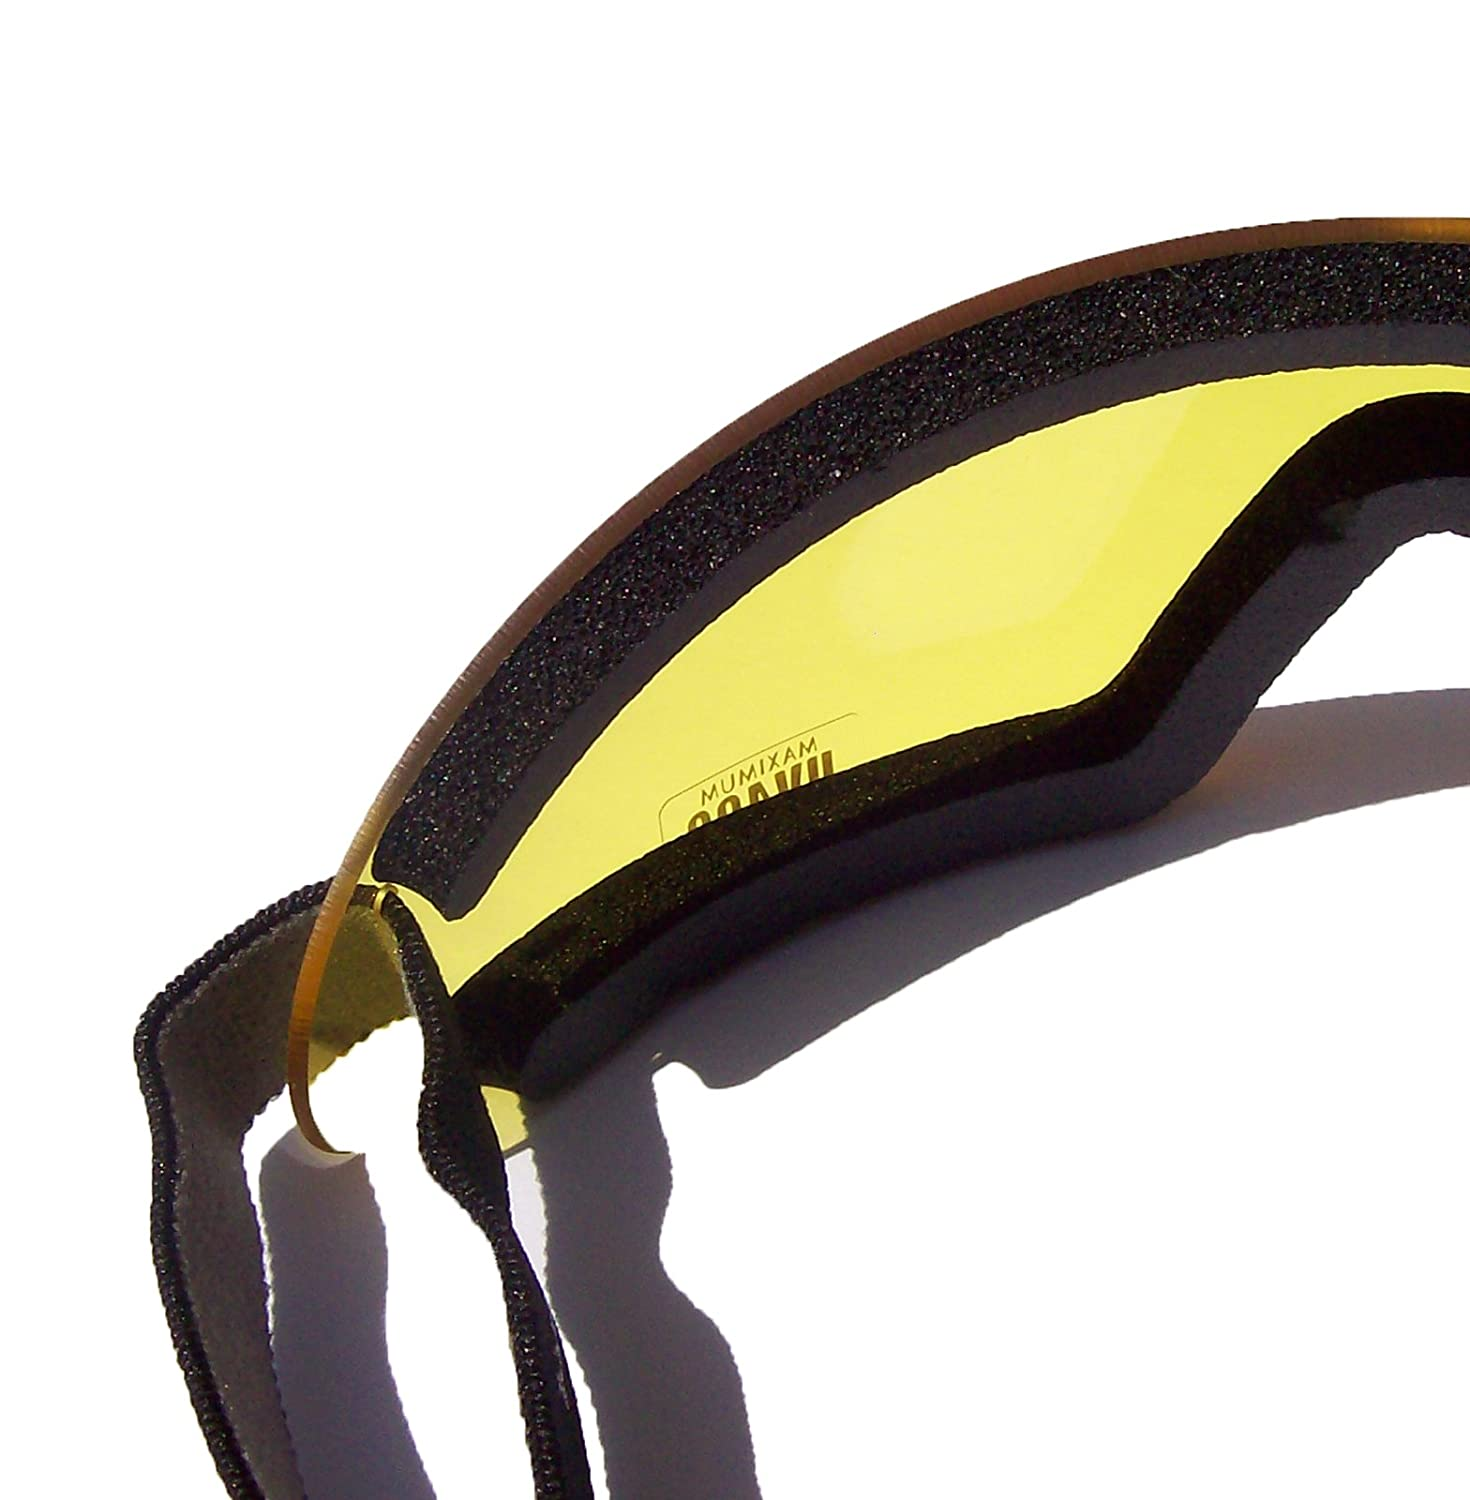 SORZ SkyDiving Freefall Parachute Anti-Fog ShatterProof Safety Goggles|Yellow Lens